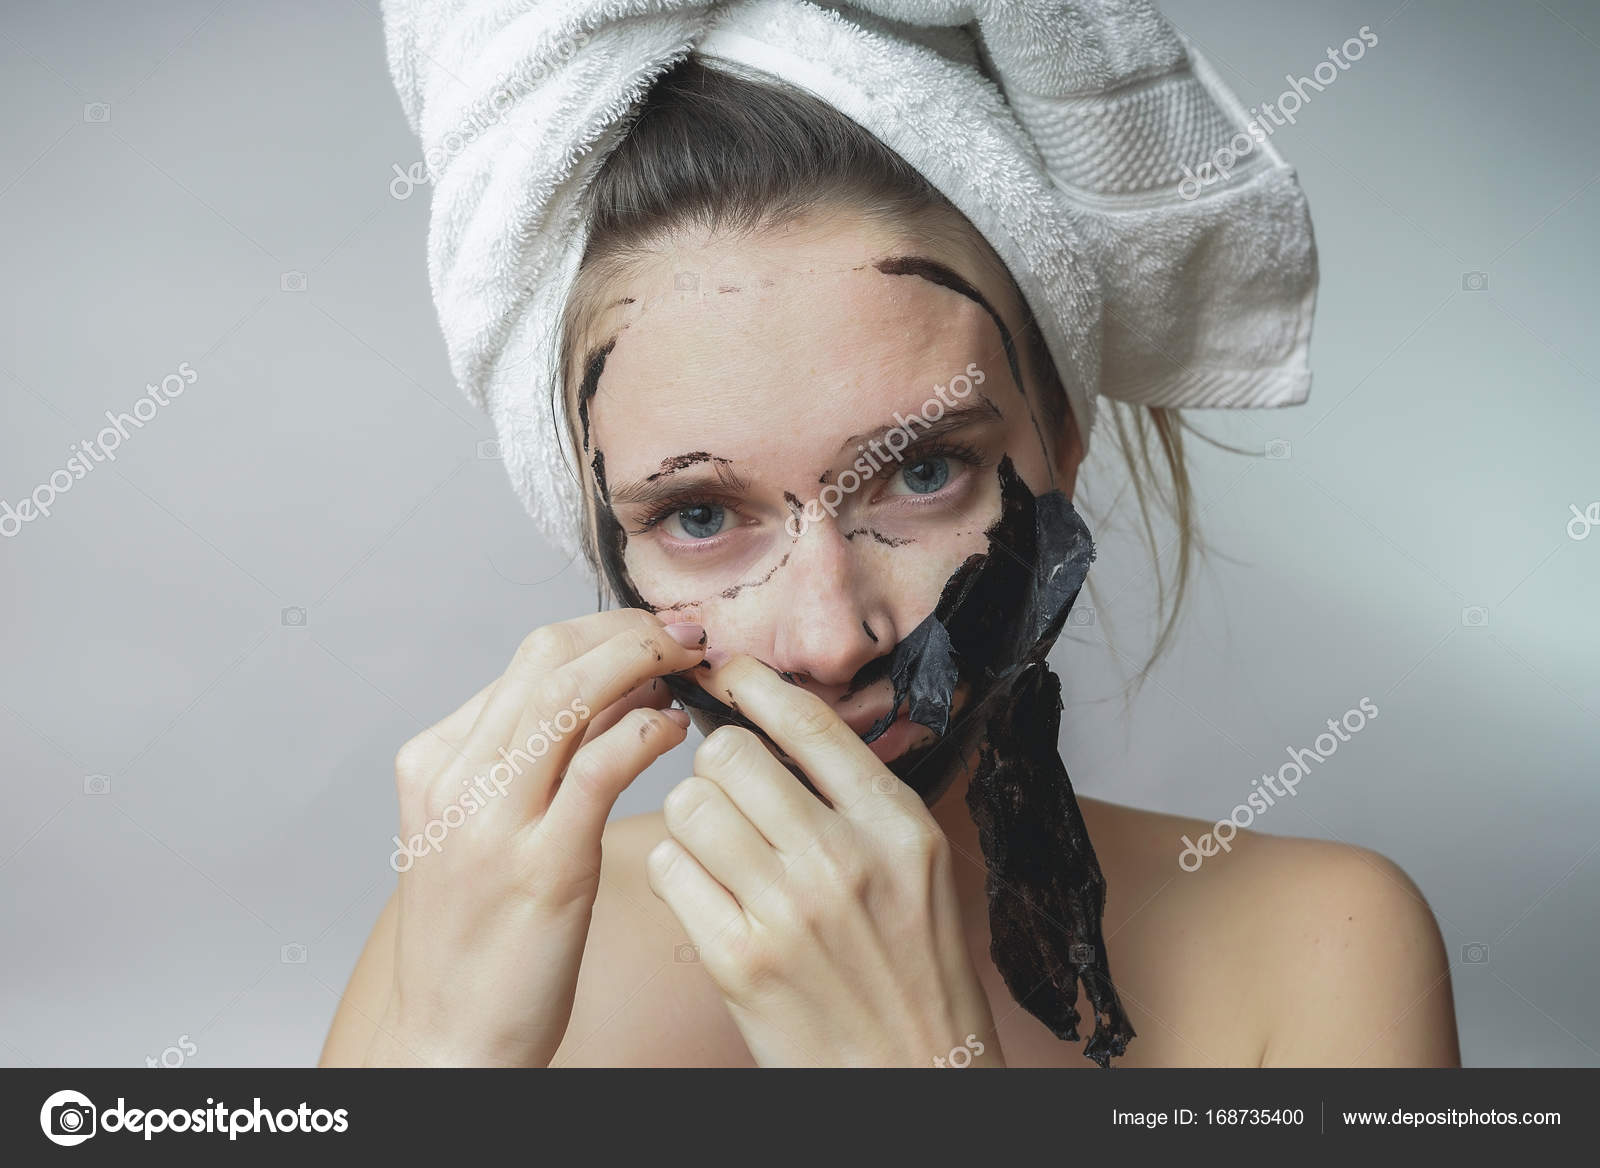 How to clean the face of black dots